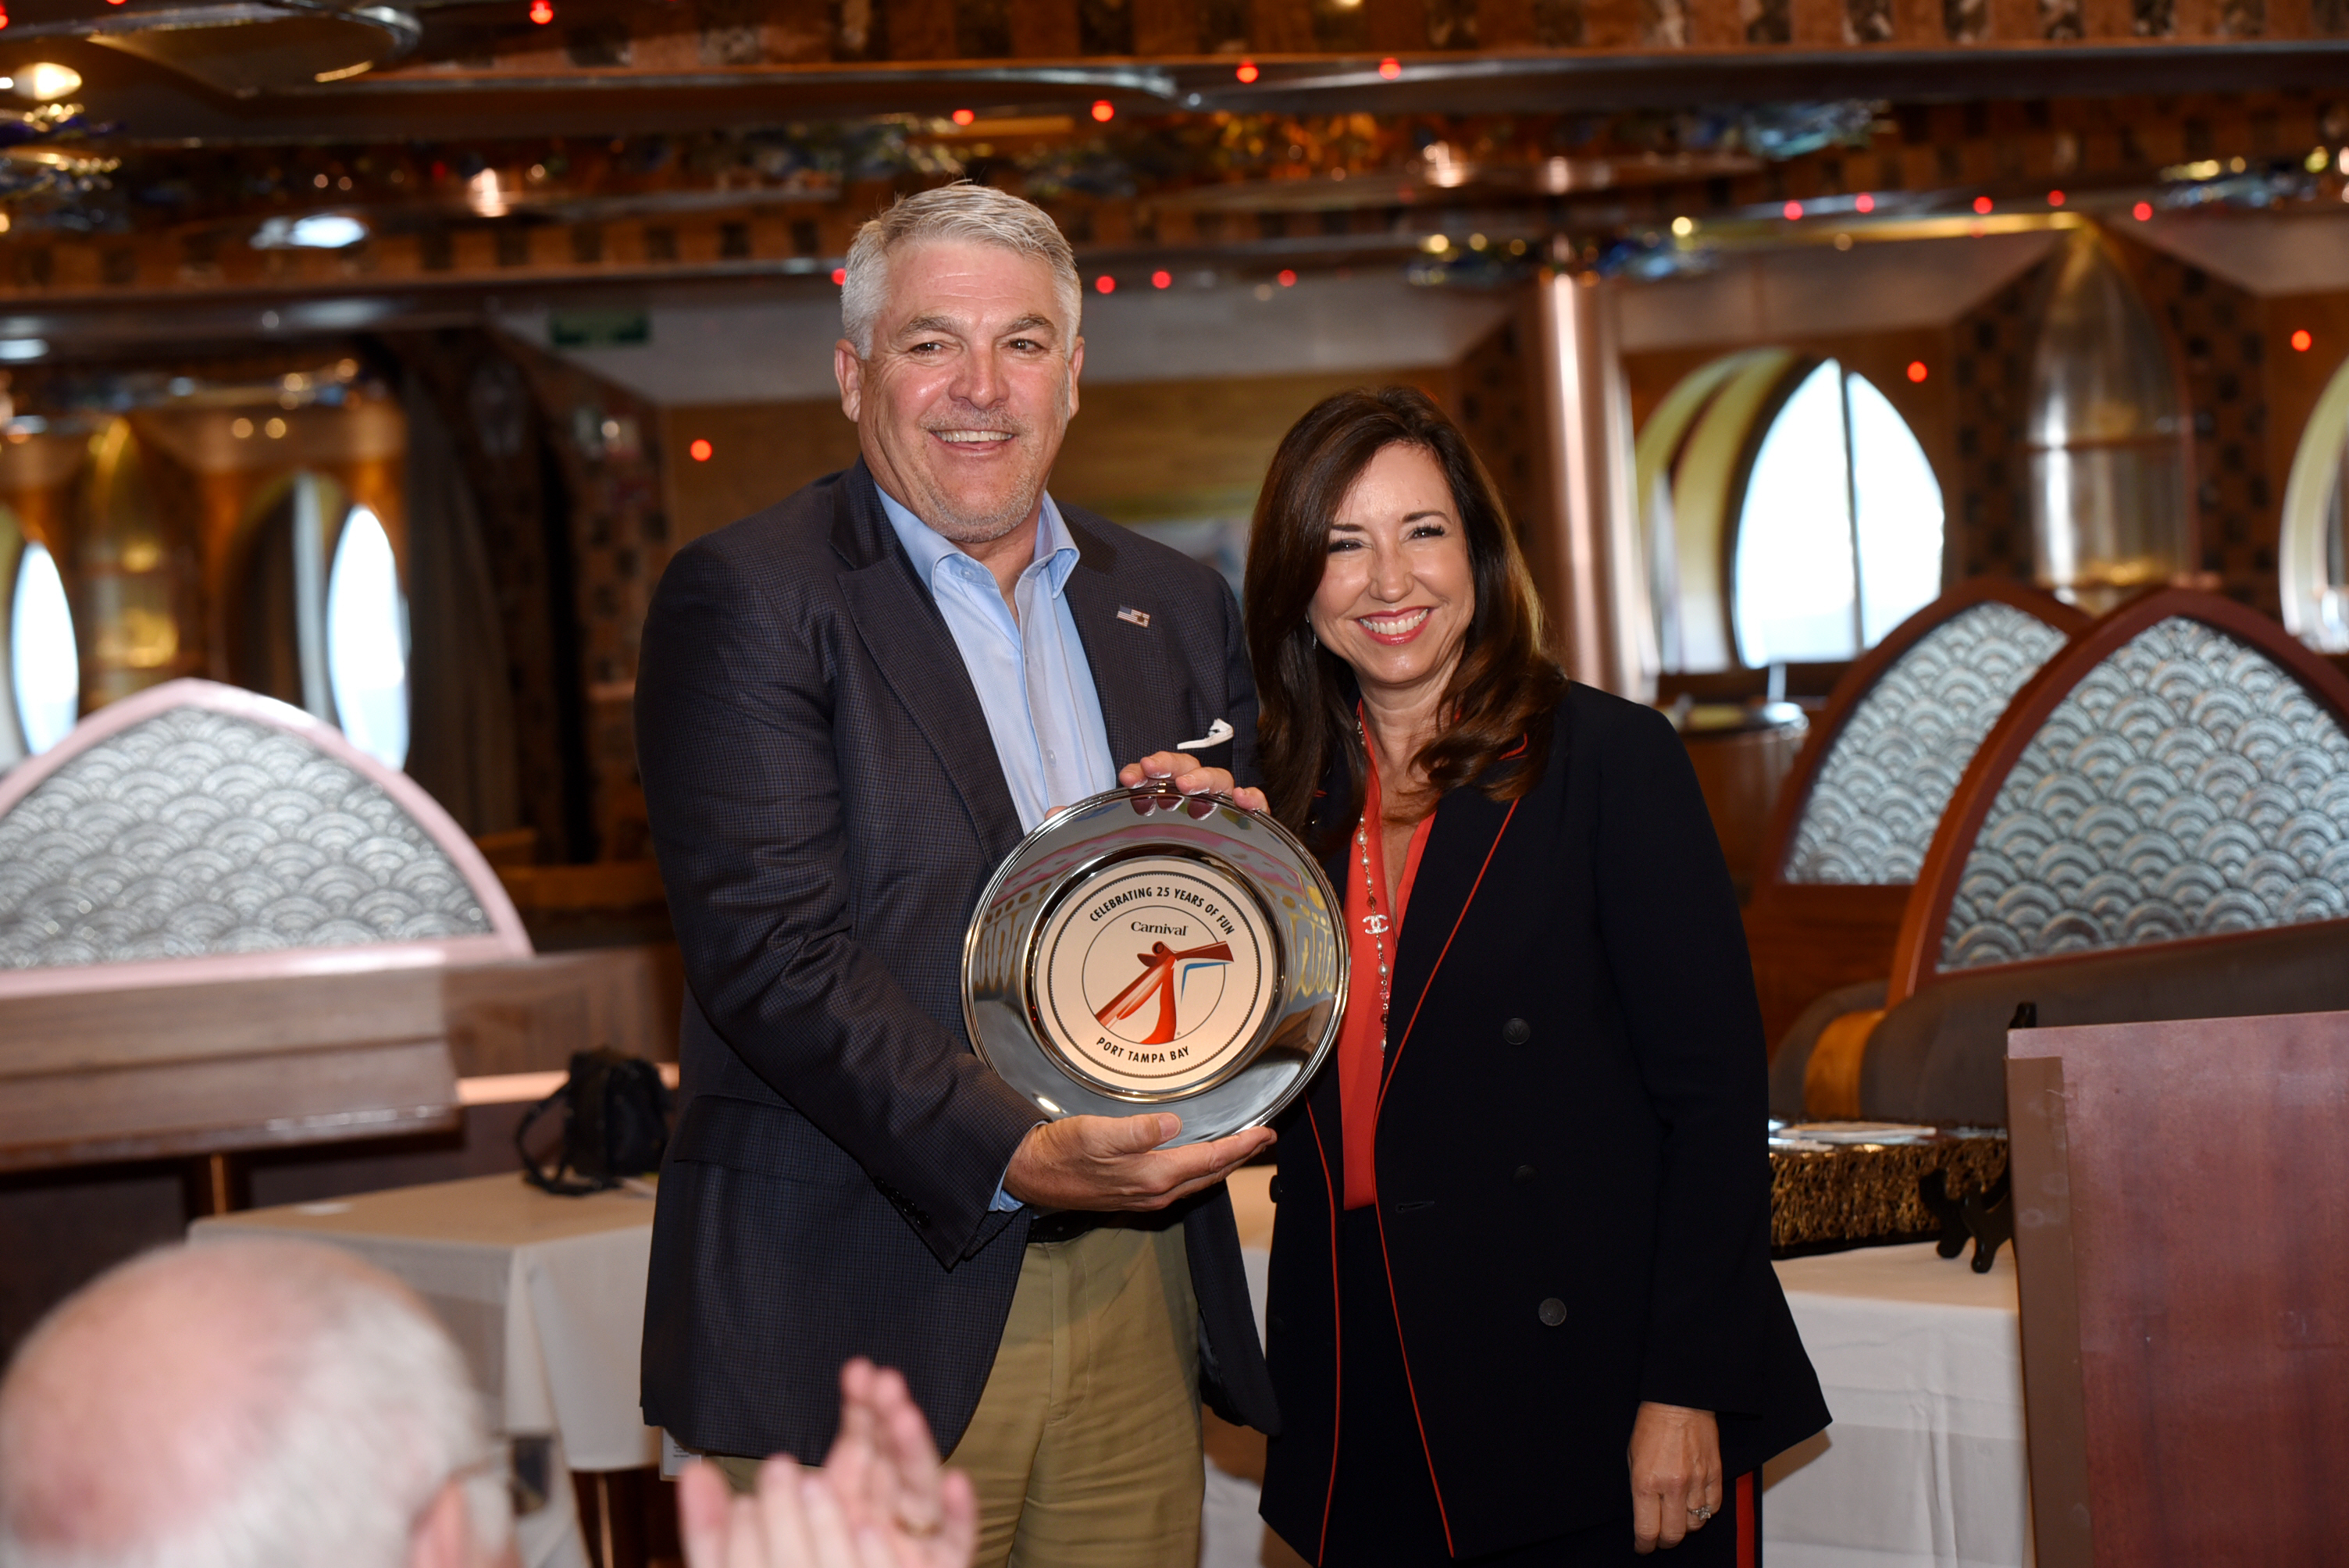 Carnival Cruise Line Celebrates 25 Years of Sailing from Tampa